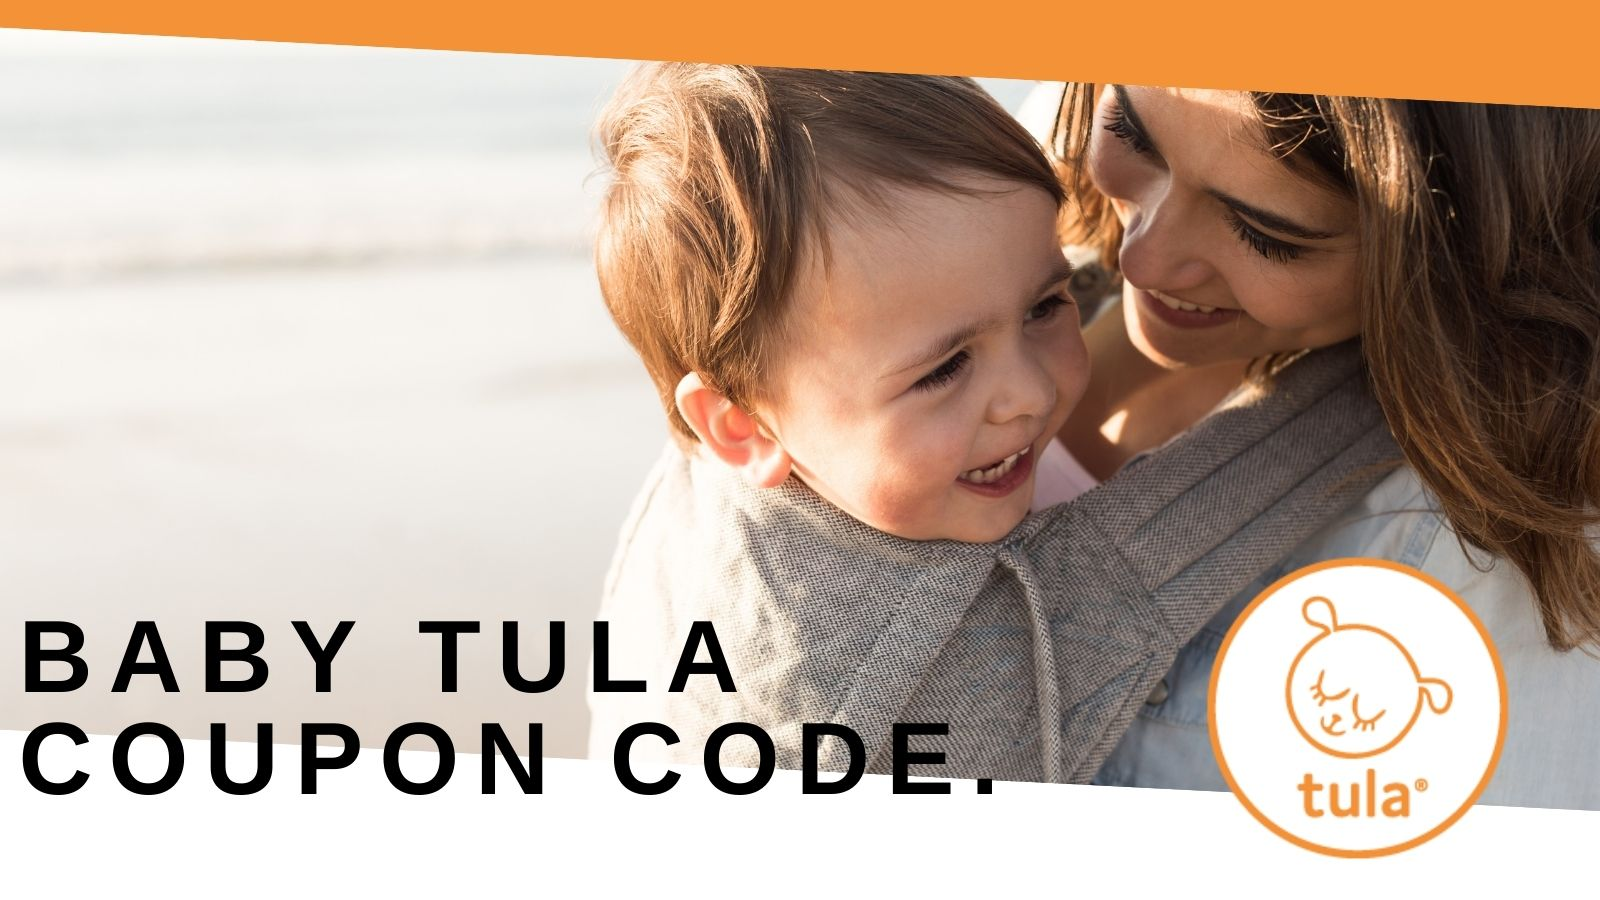 Baby Tula Coupon Code.